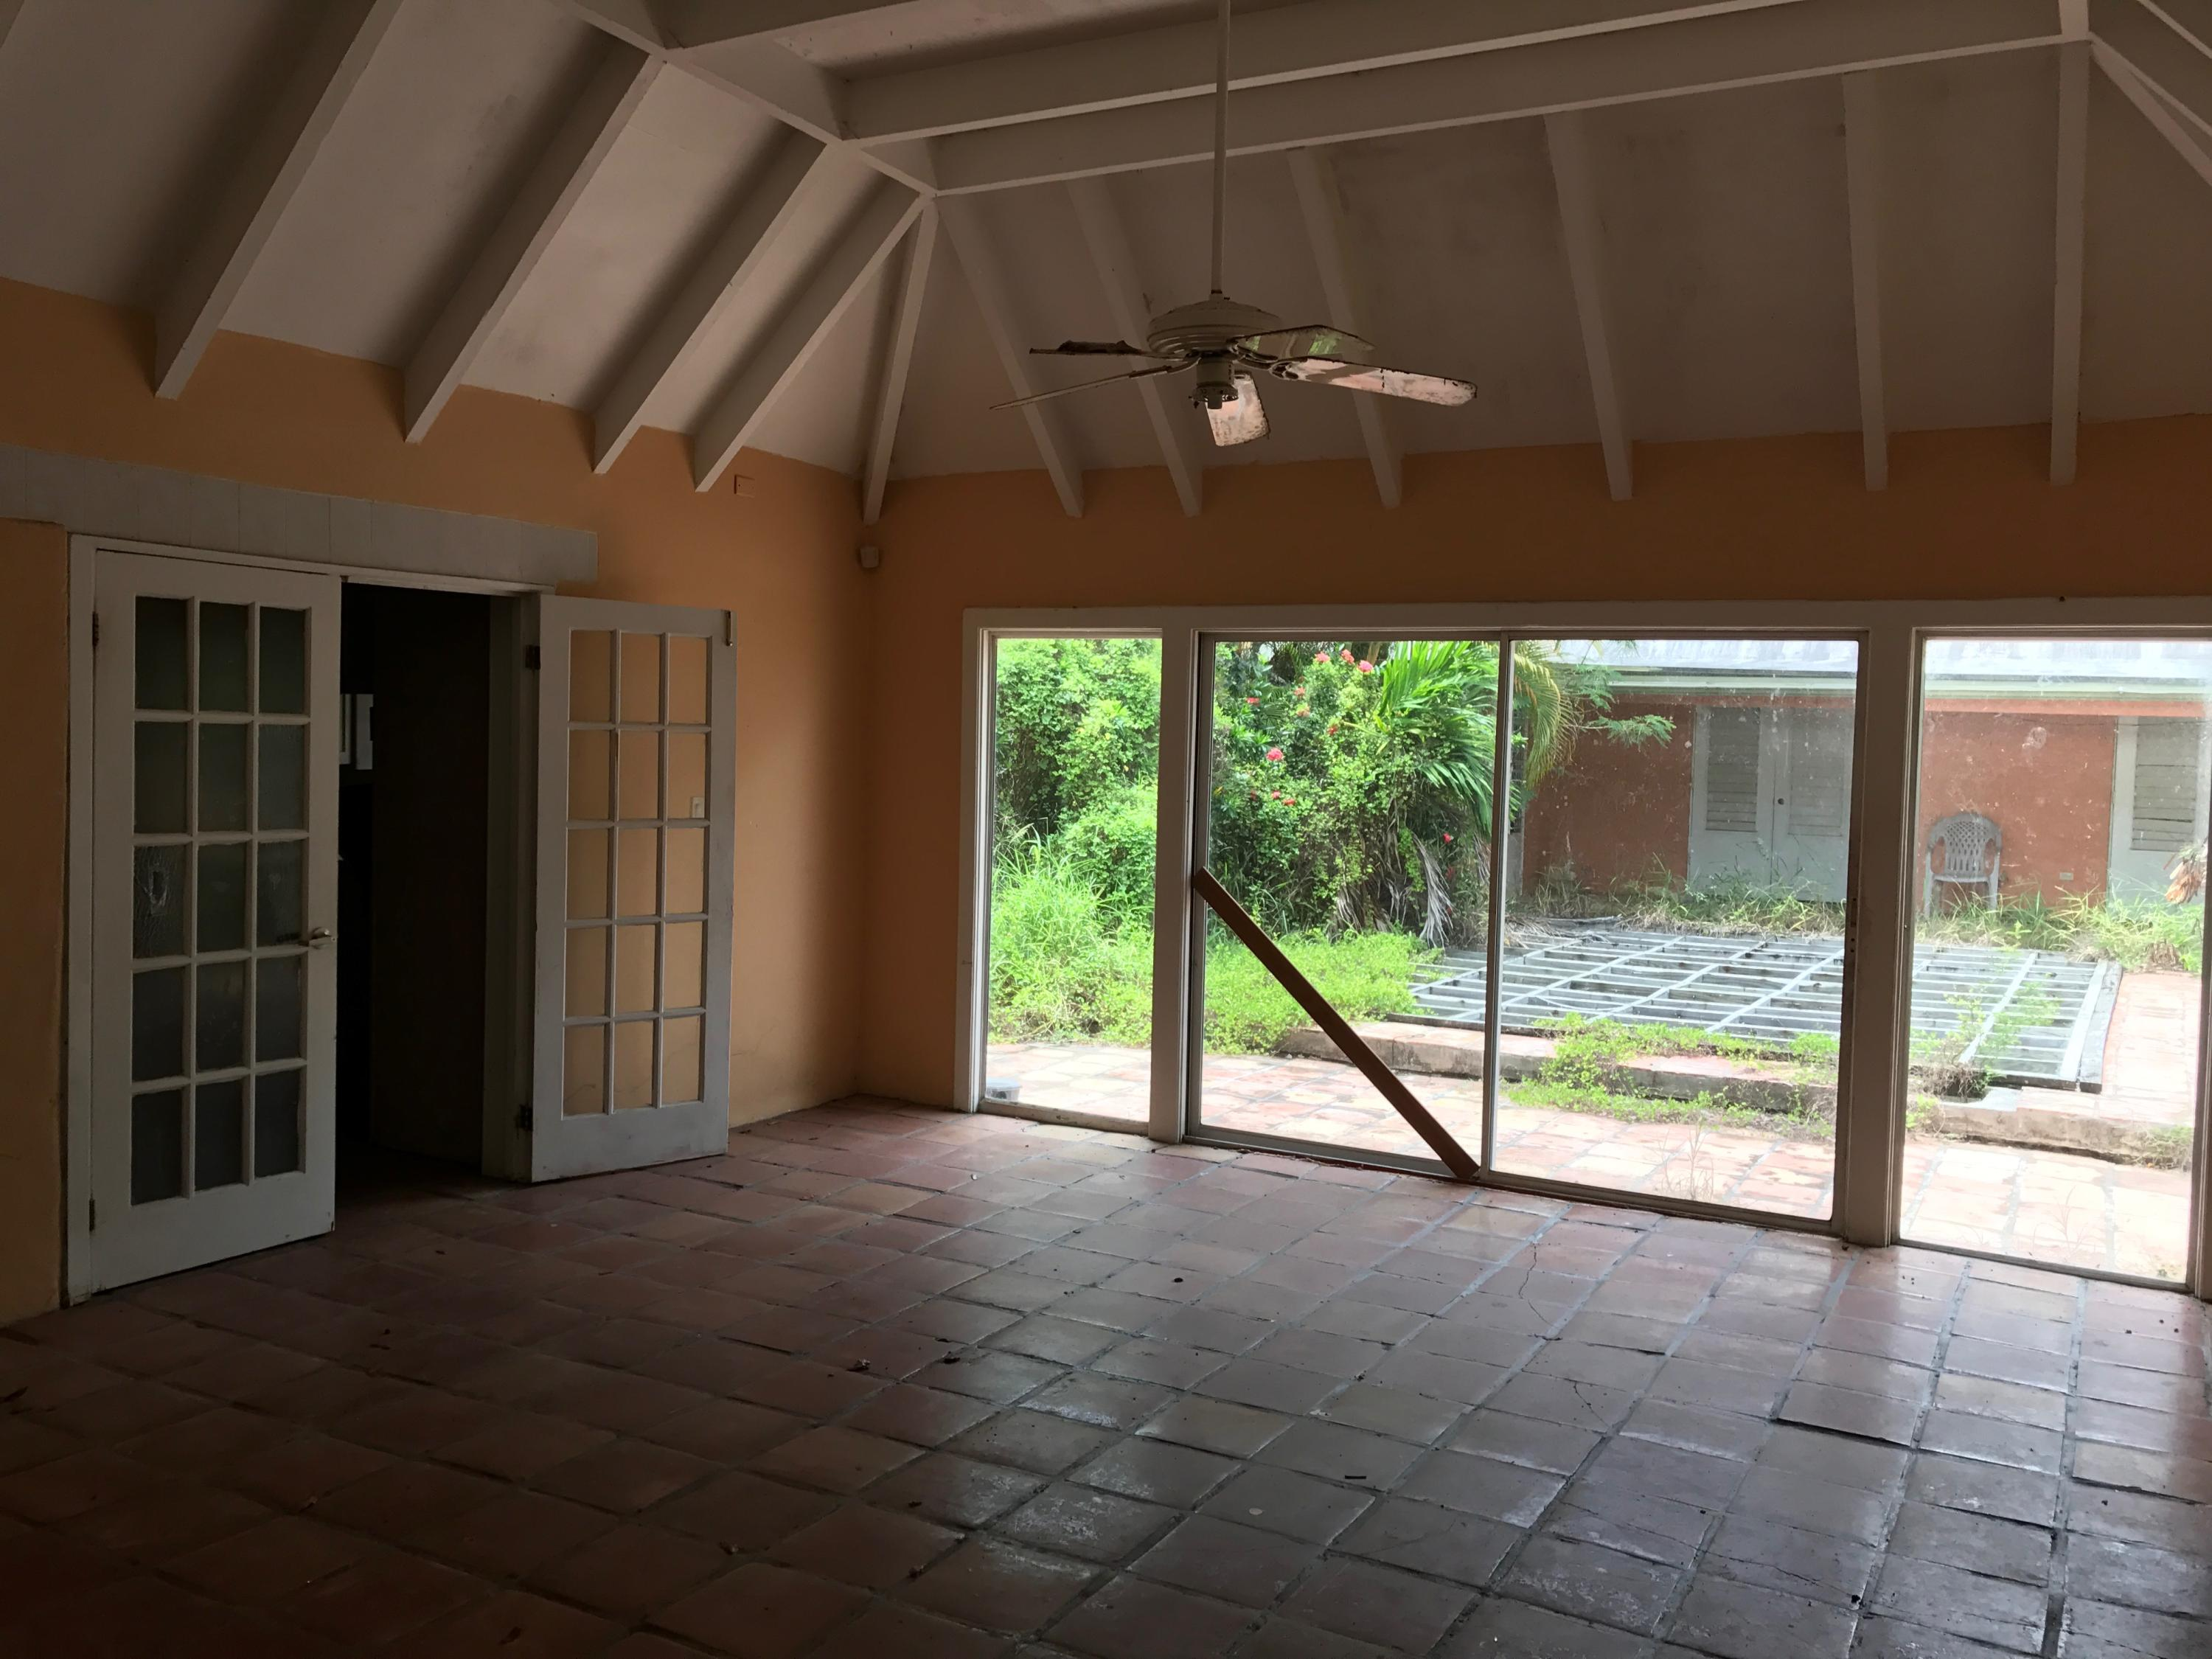 Living Room Looking out to Pool